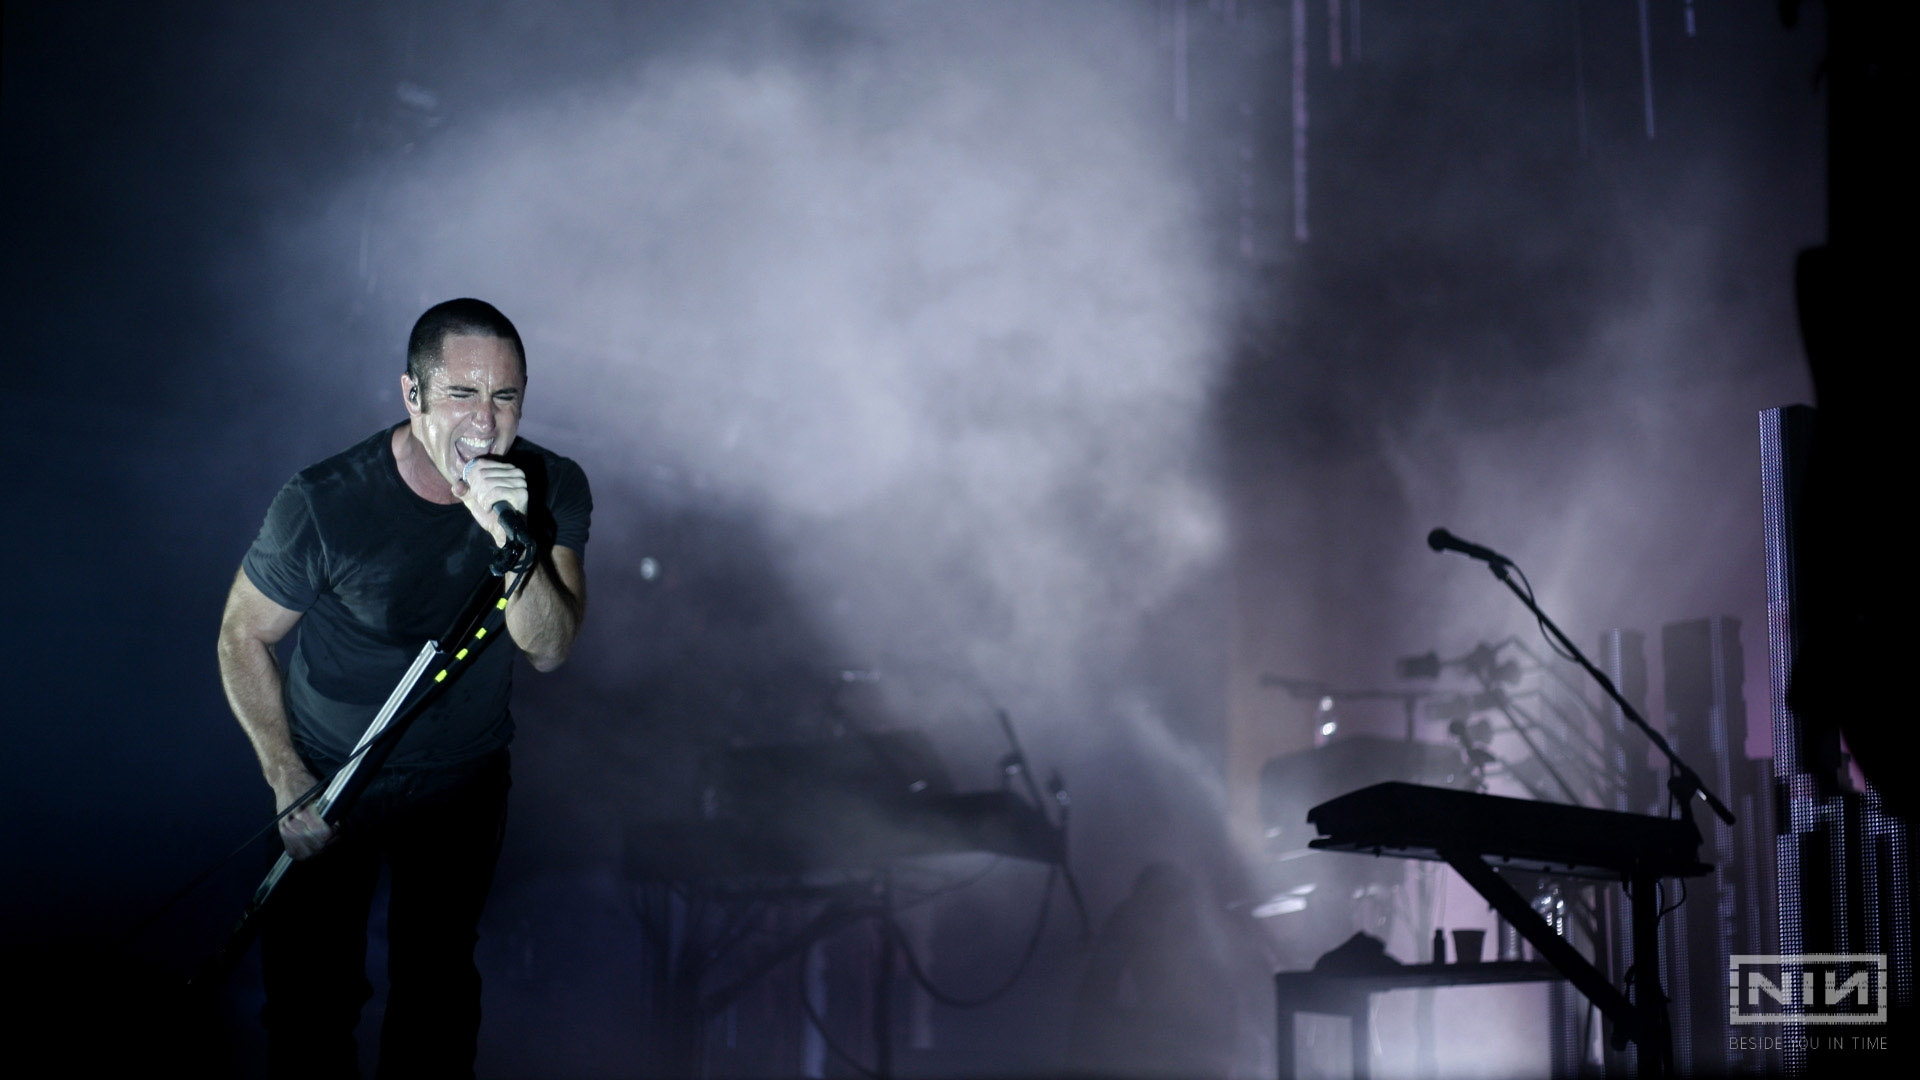 Download Wallpaper 1920x1080 nine inch nails, concert, singing ...